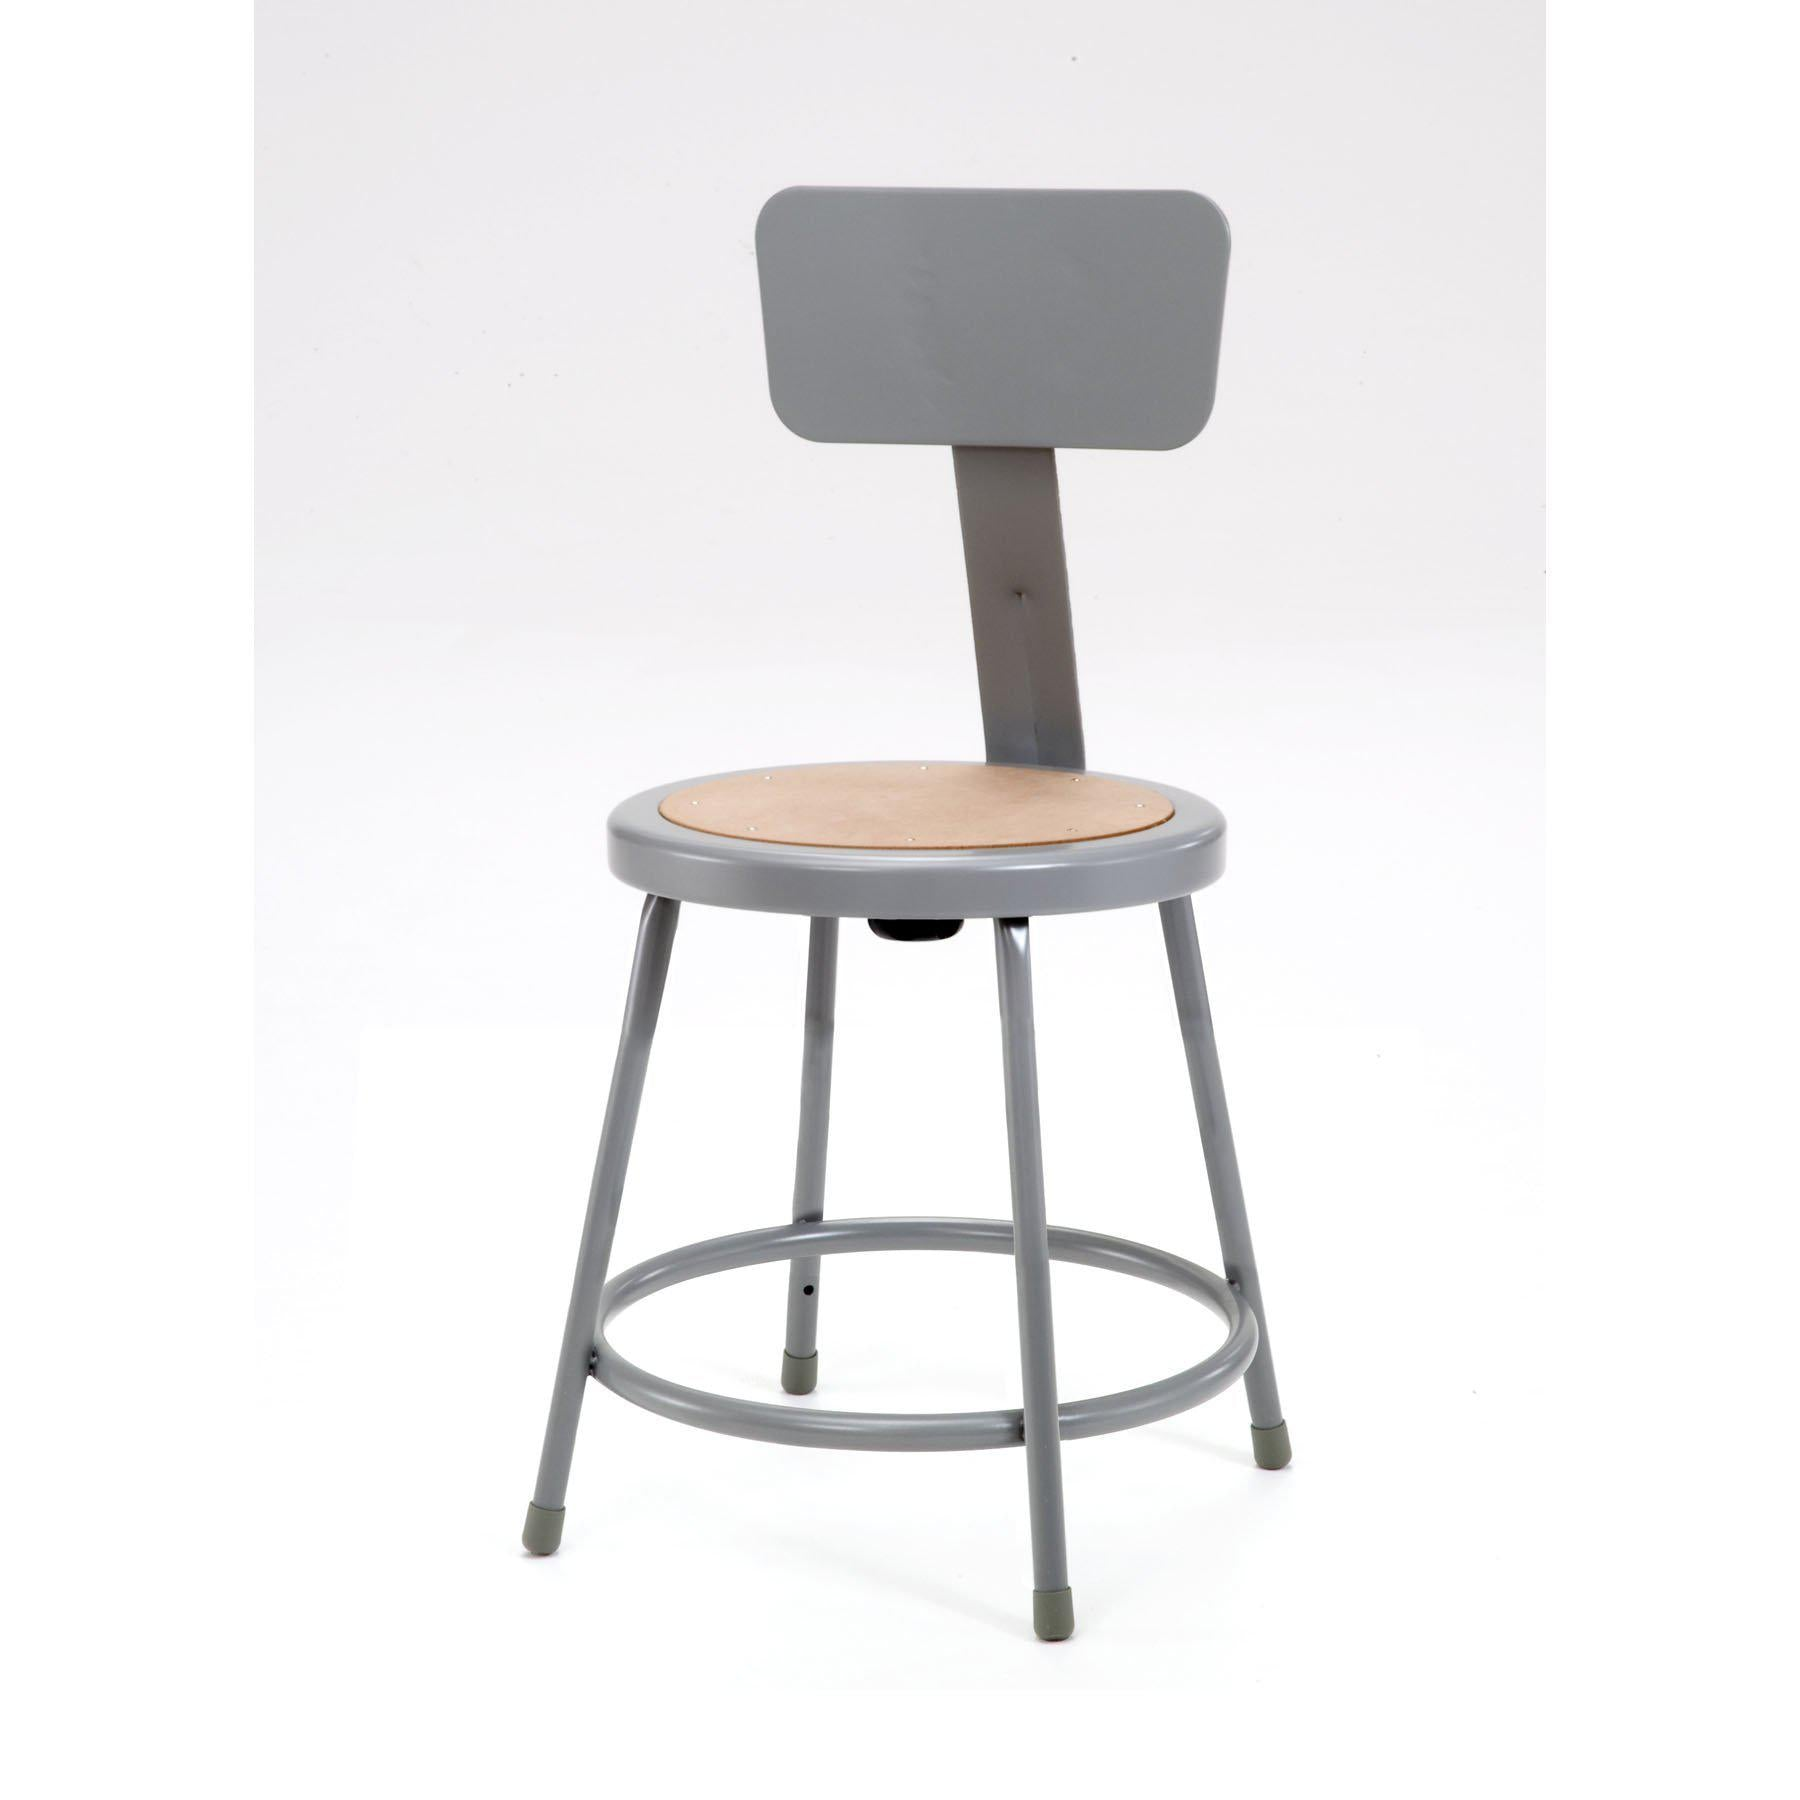 "Heavy Duty Steel Stool With Backrest-Stools-18""-Grey-"